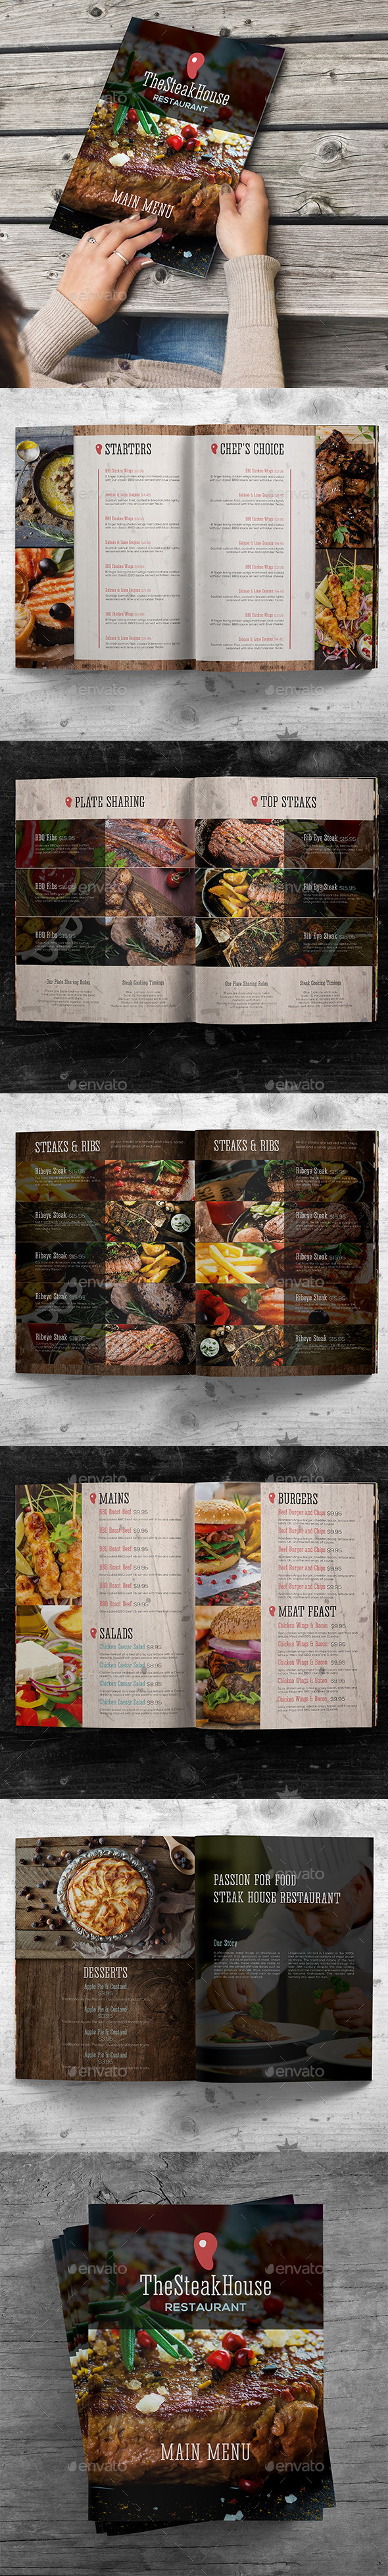 Rustic Main Menu Template - Restaurant Flyers